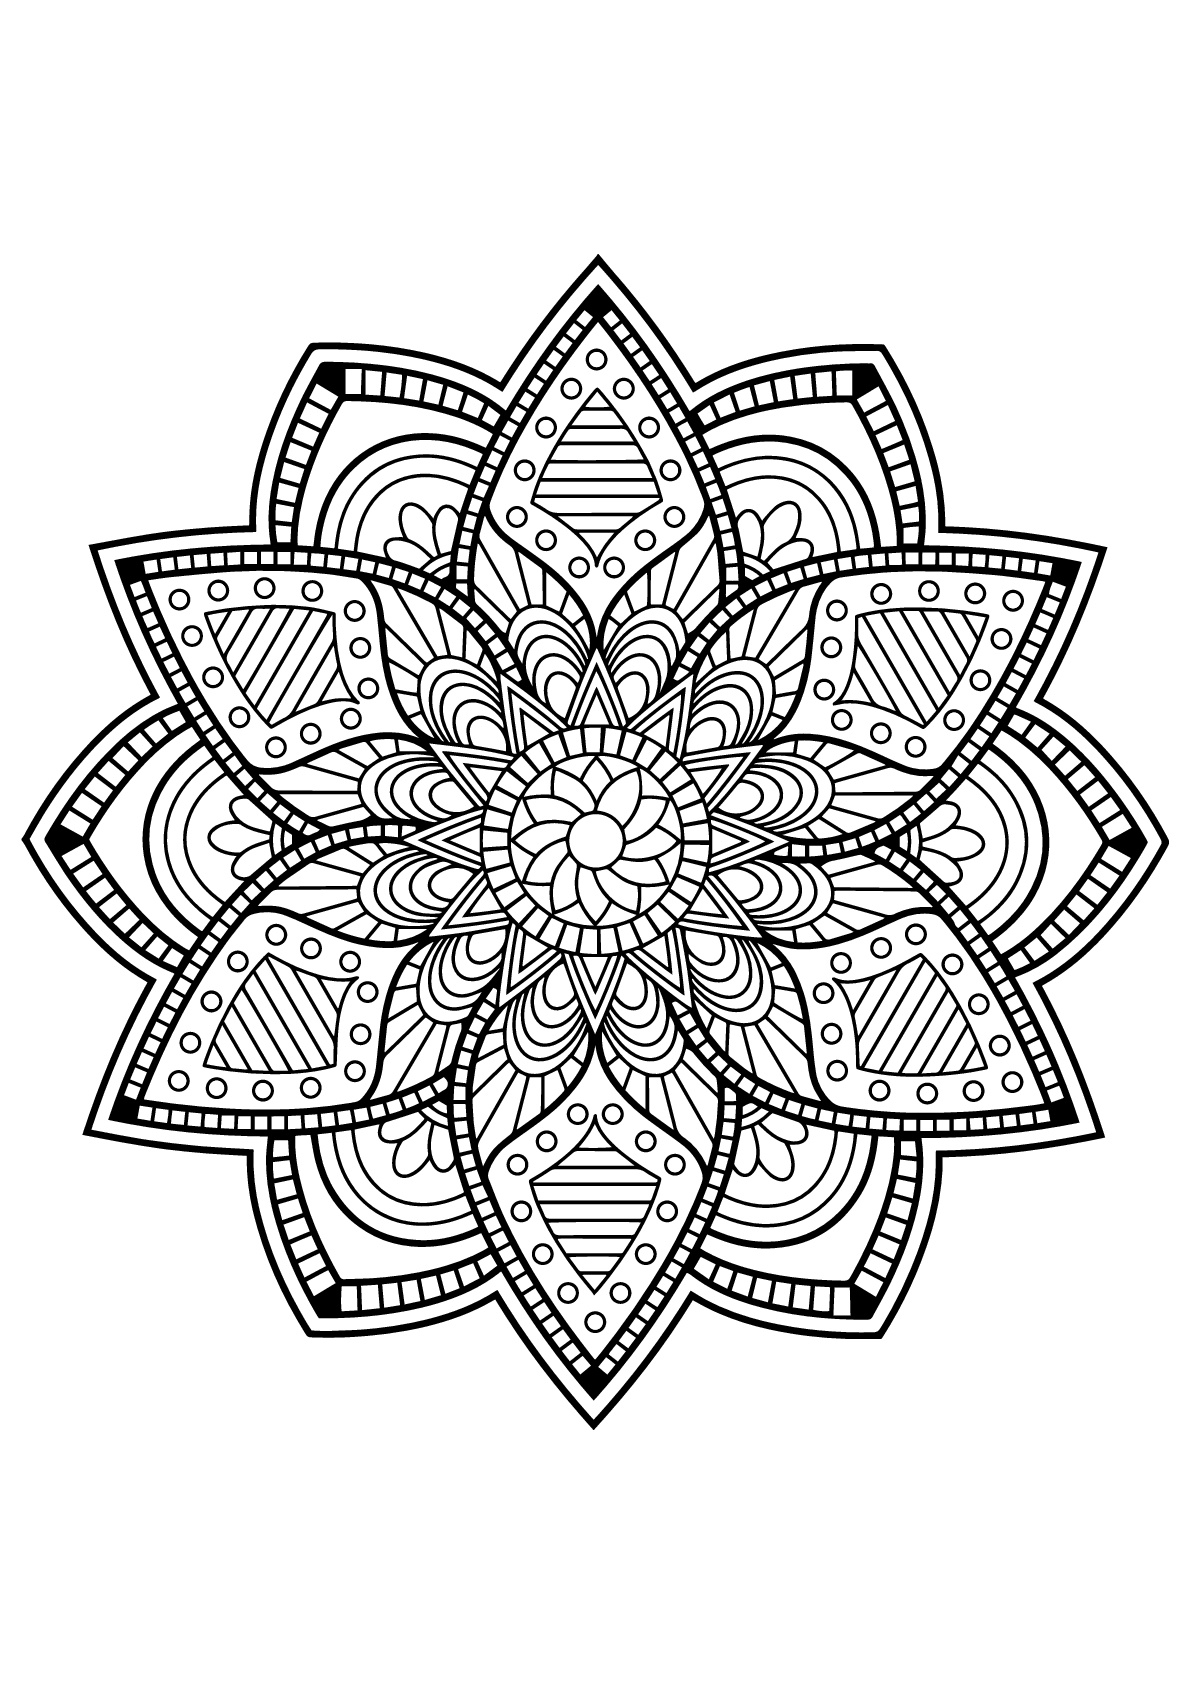 free printable mandalas for adults get this printable mandala coloring pages for adults mandalas printable adults for free